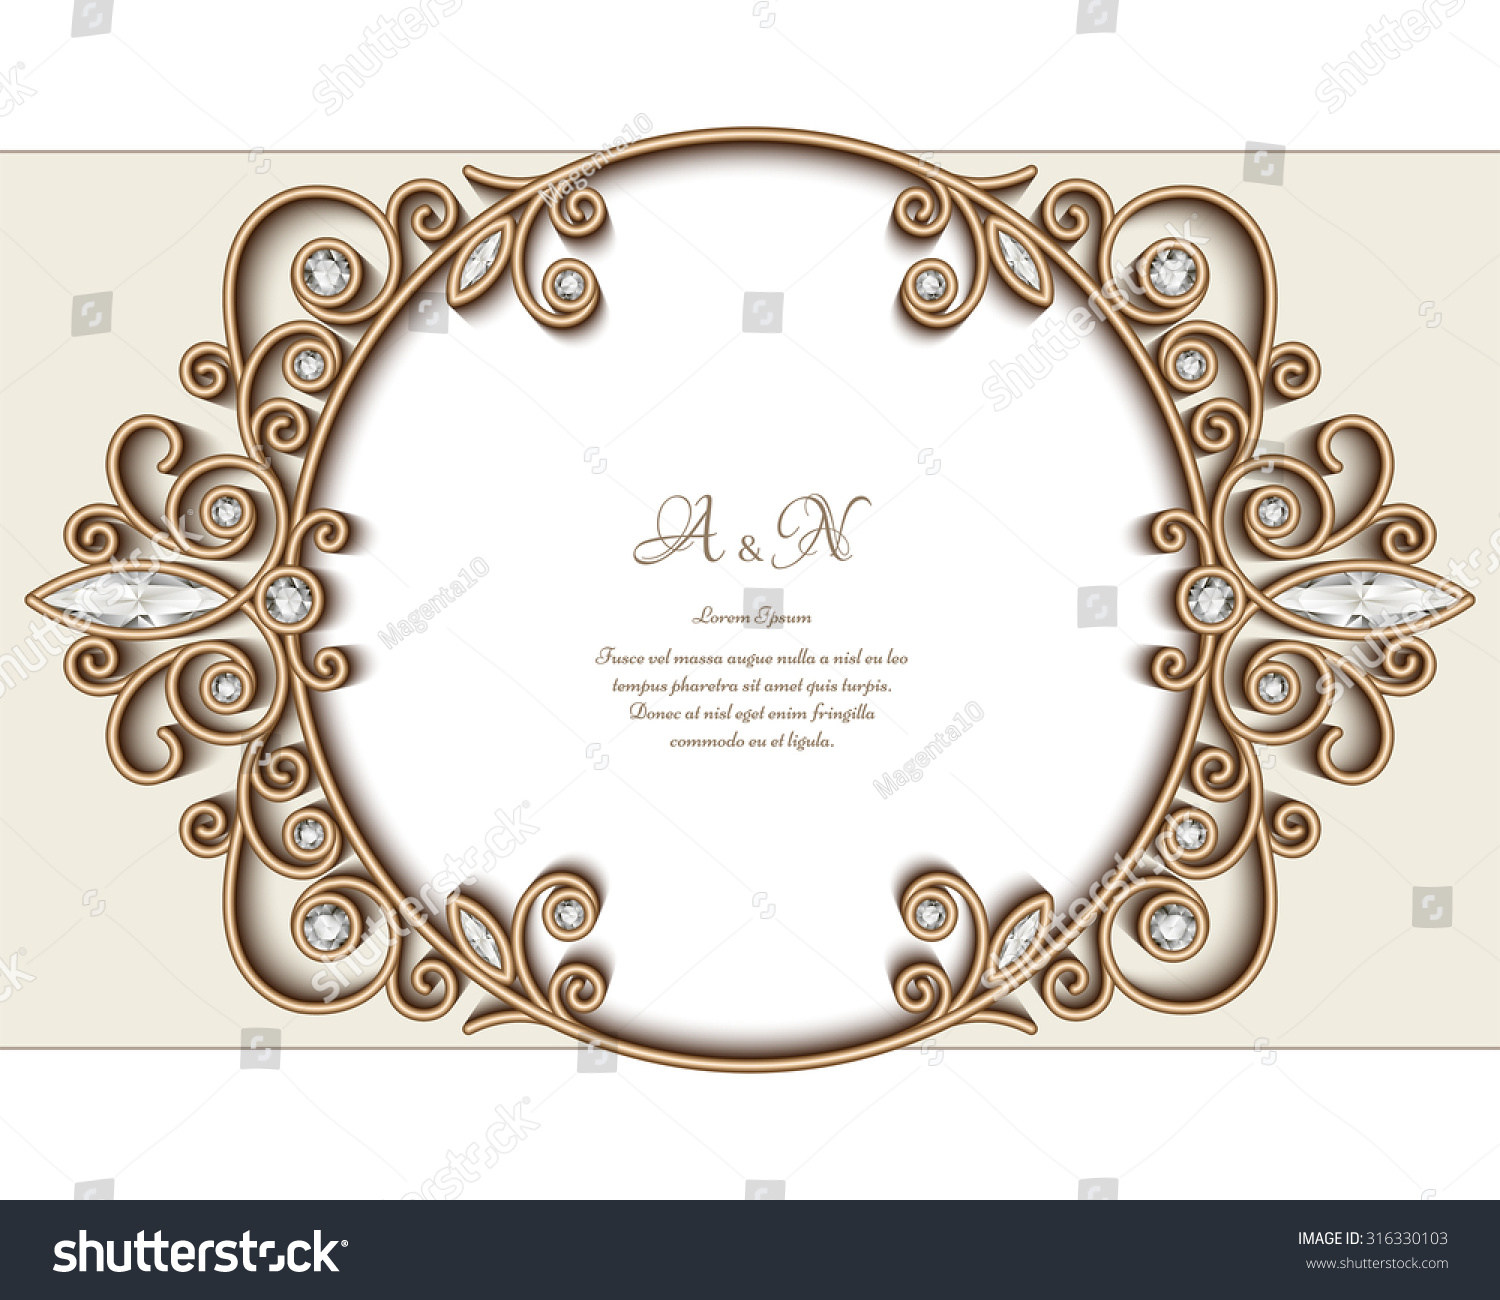 Vintage gold jewelry background diamond vignette vector circle ornament elegant jewellery frame eps10